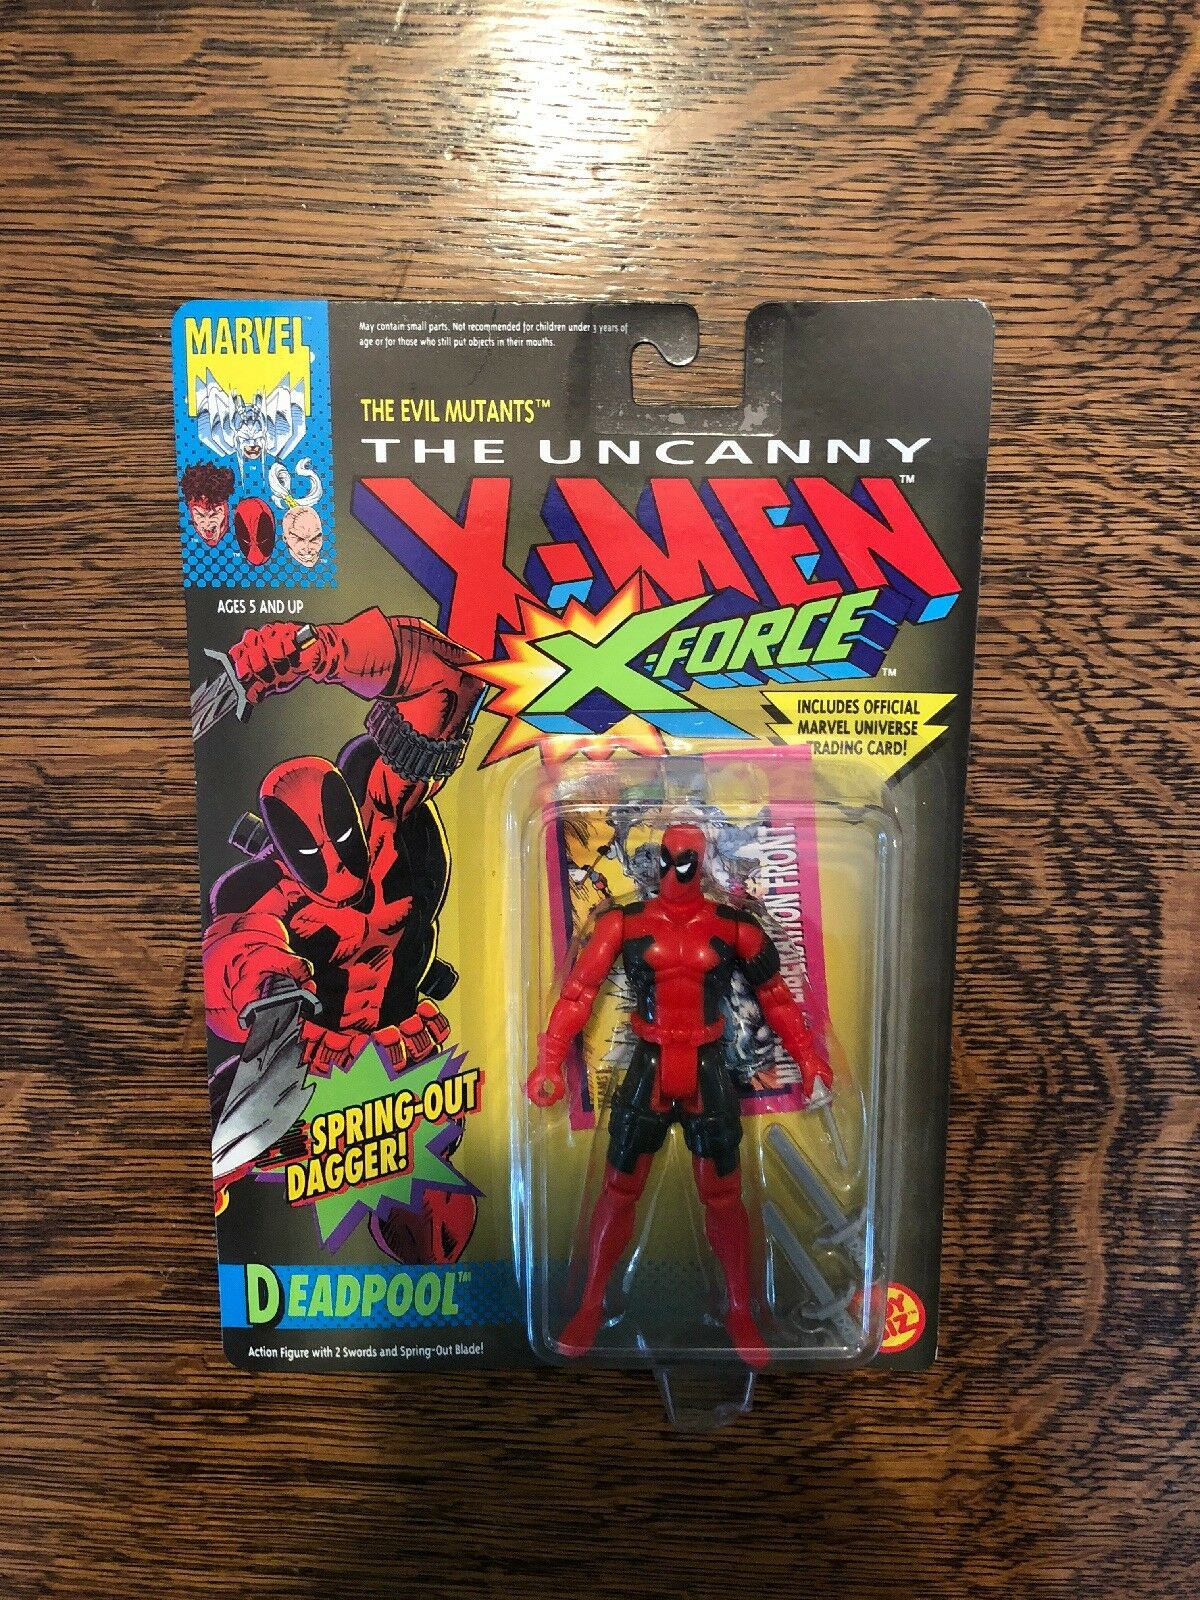 Marvel die unheimlichen x - men - x - force fr deadpool action - figur, toybiz 1992 neue